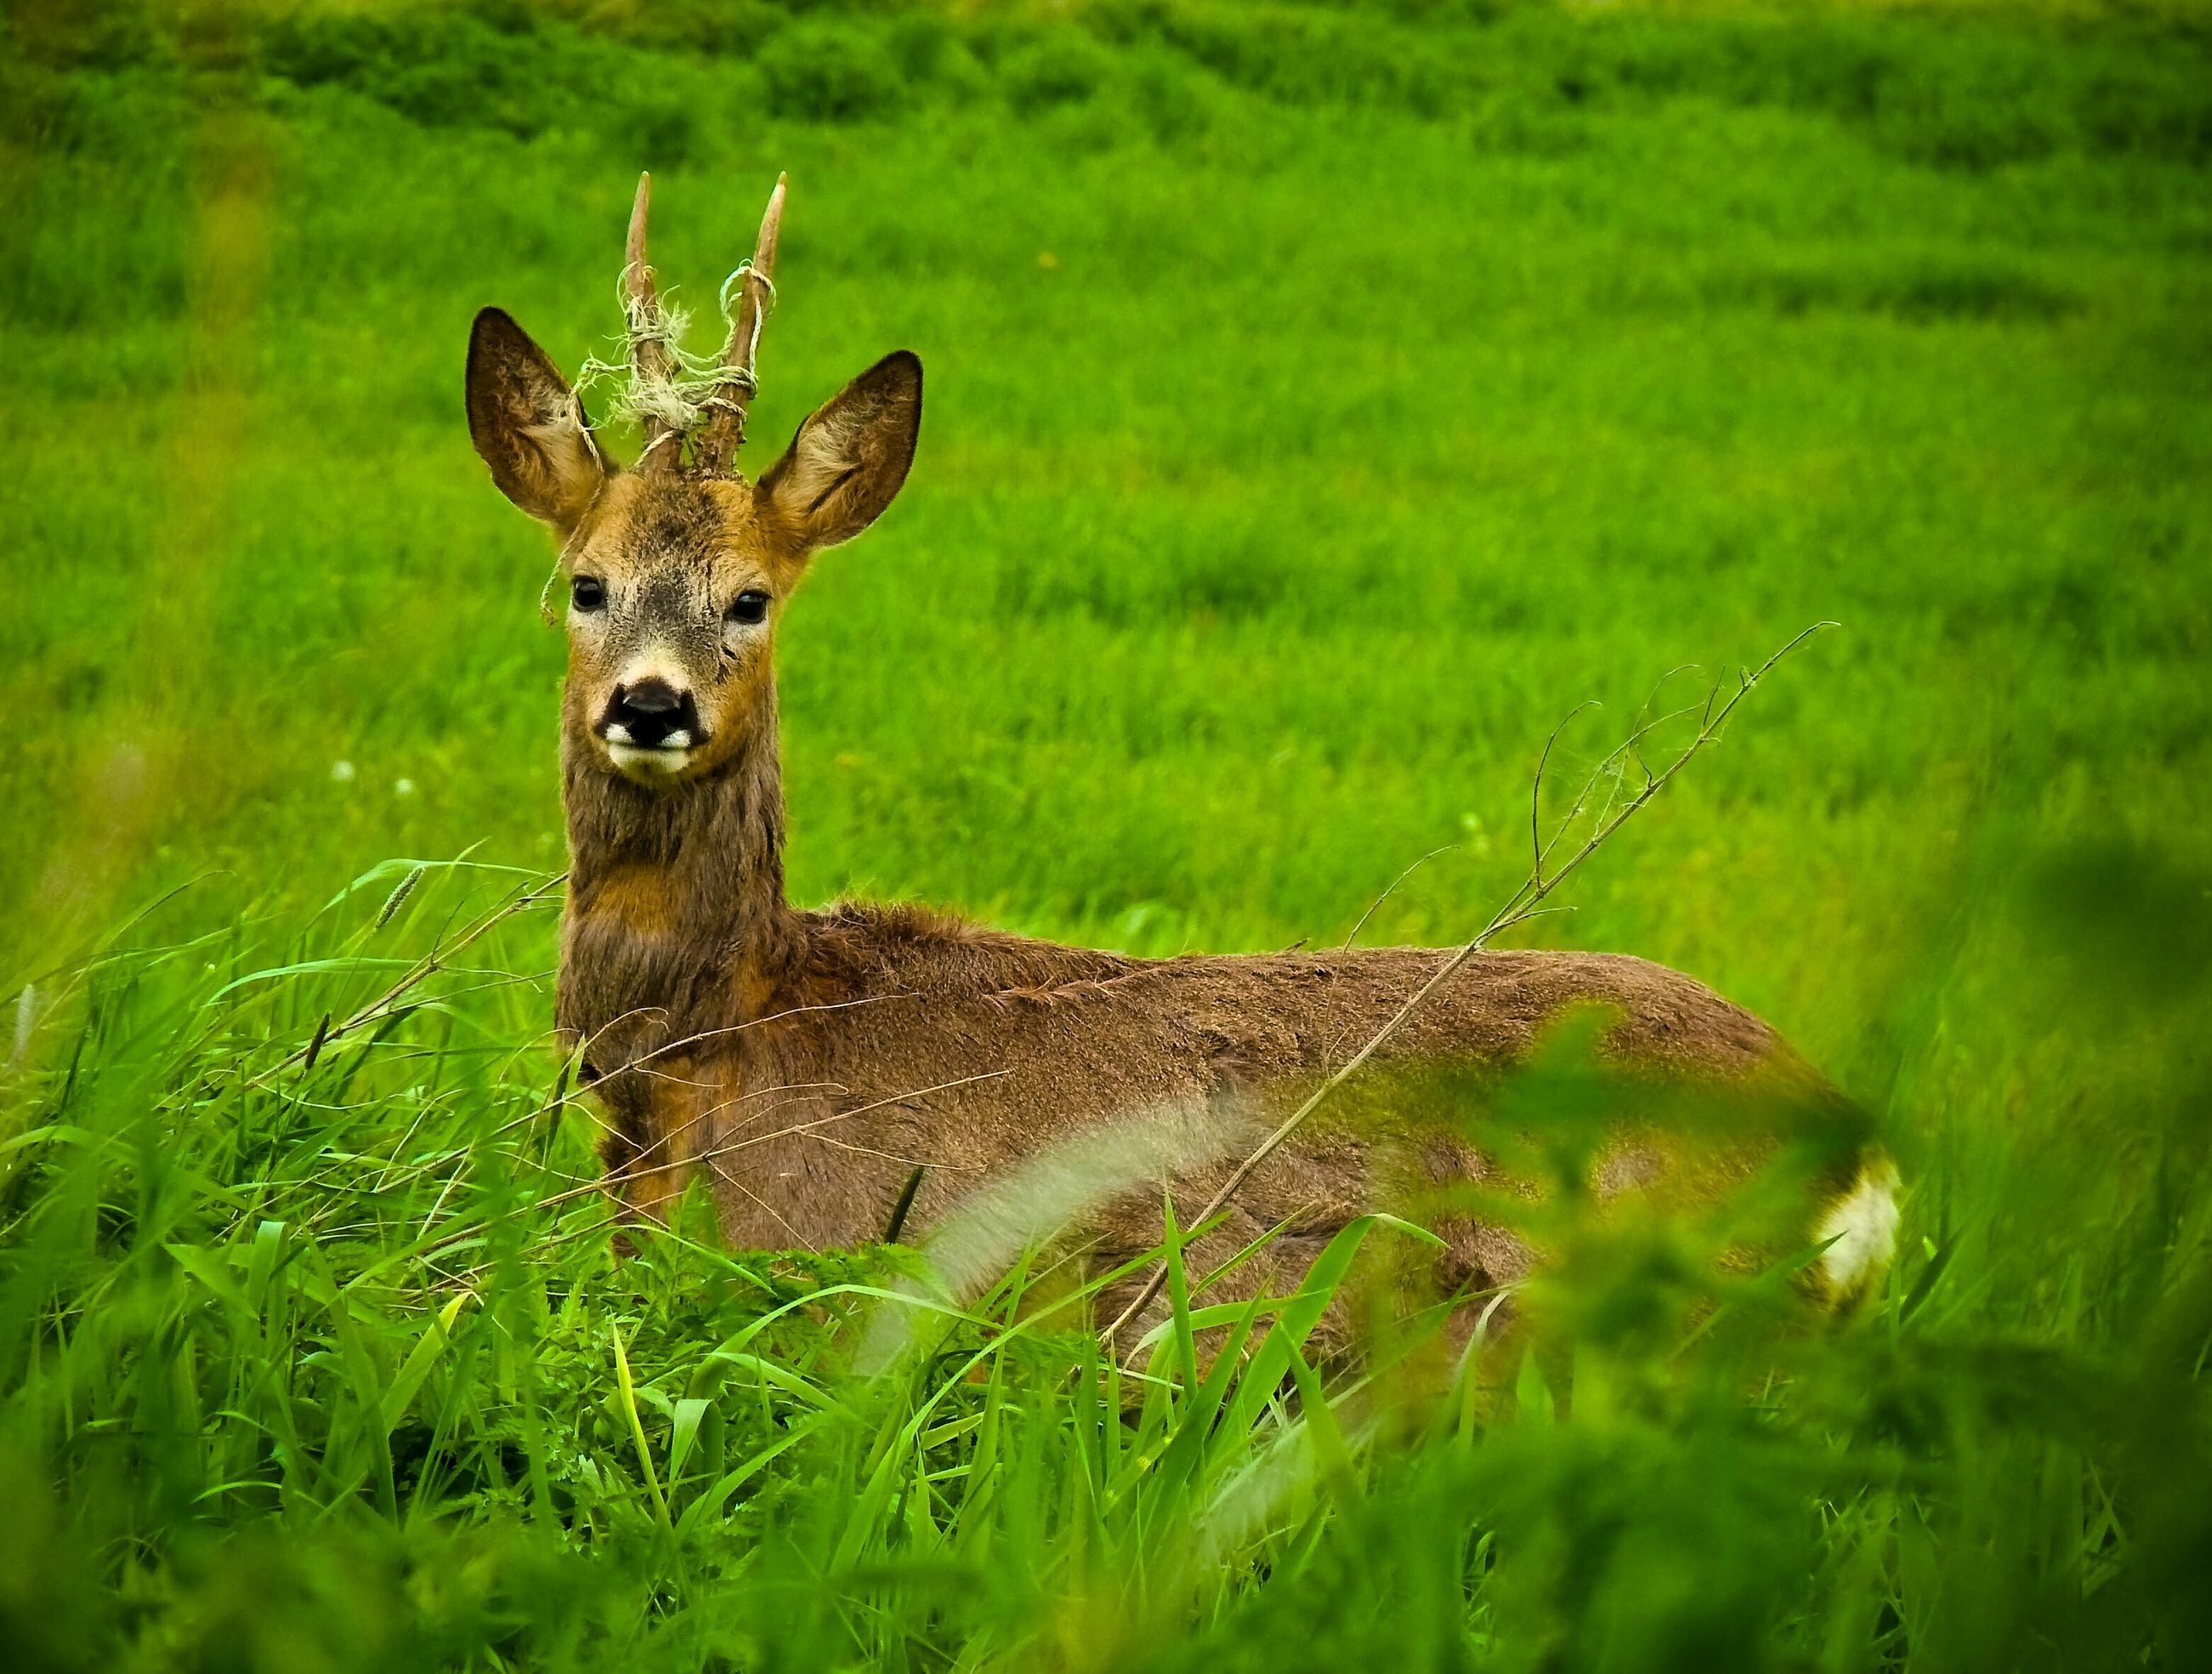 animal themes, grass, animals in the wild, one animal, wildlife, grassy, field, green color, mammal, nature, deer, focus on foreground, full length, day, landscape, outdoors, no people, growth, beauty in nature, side view